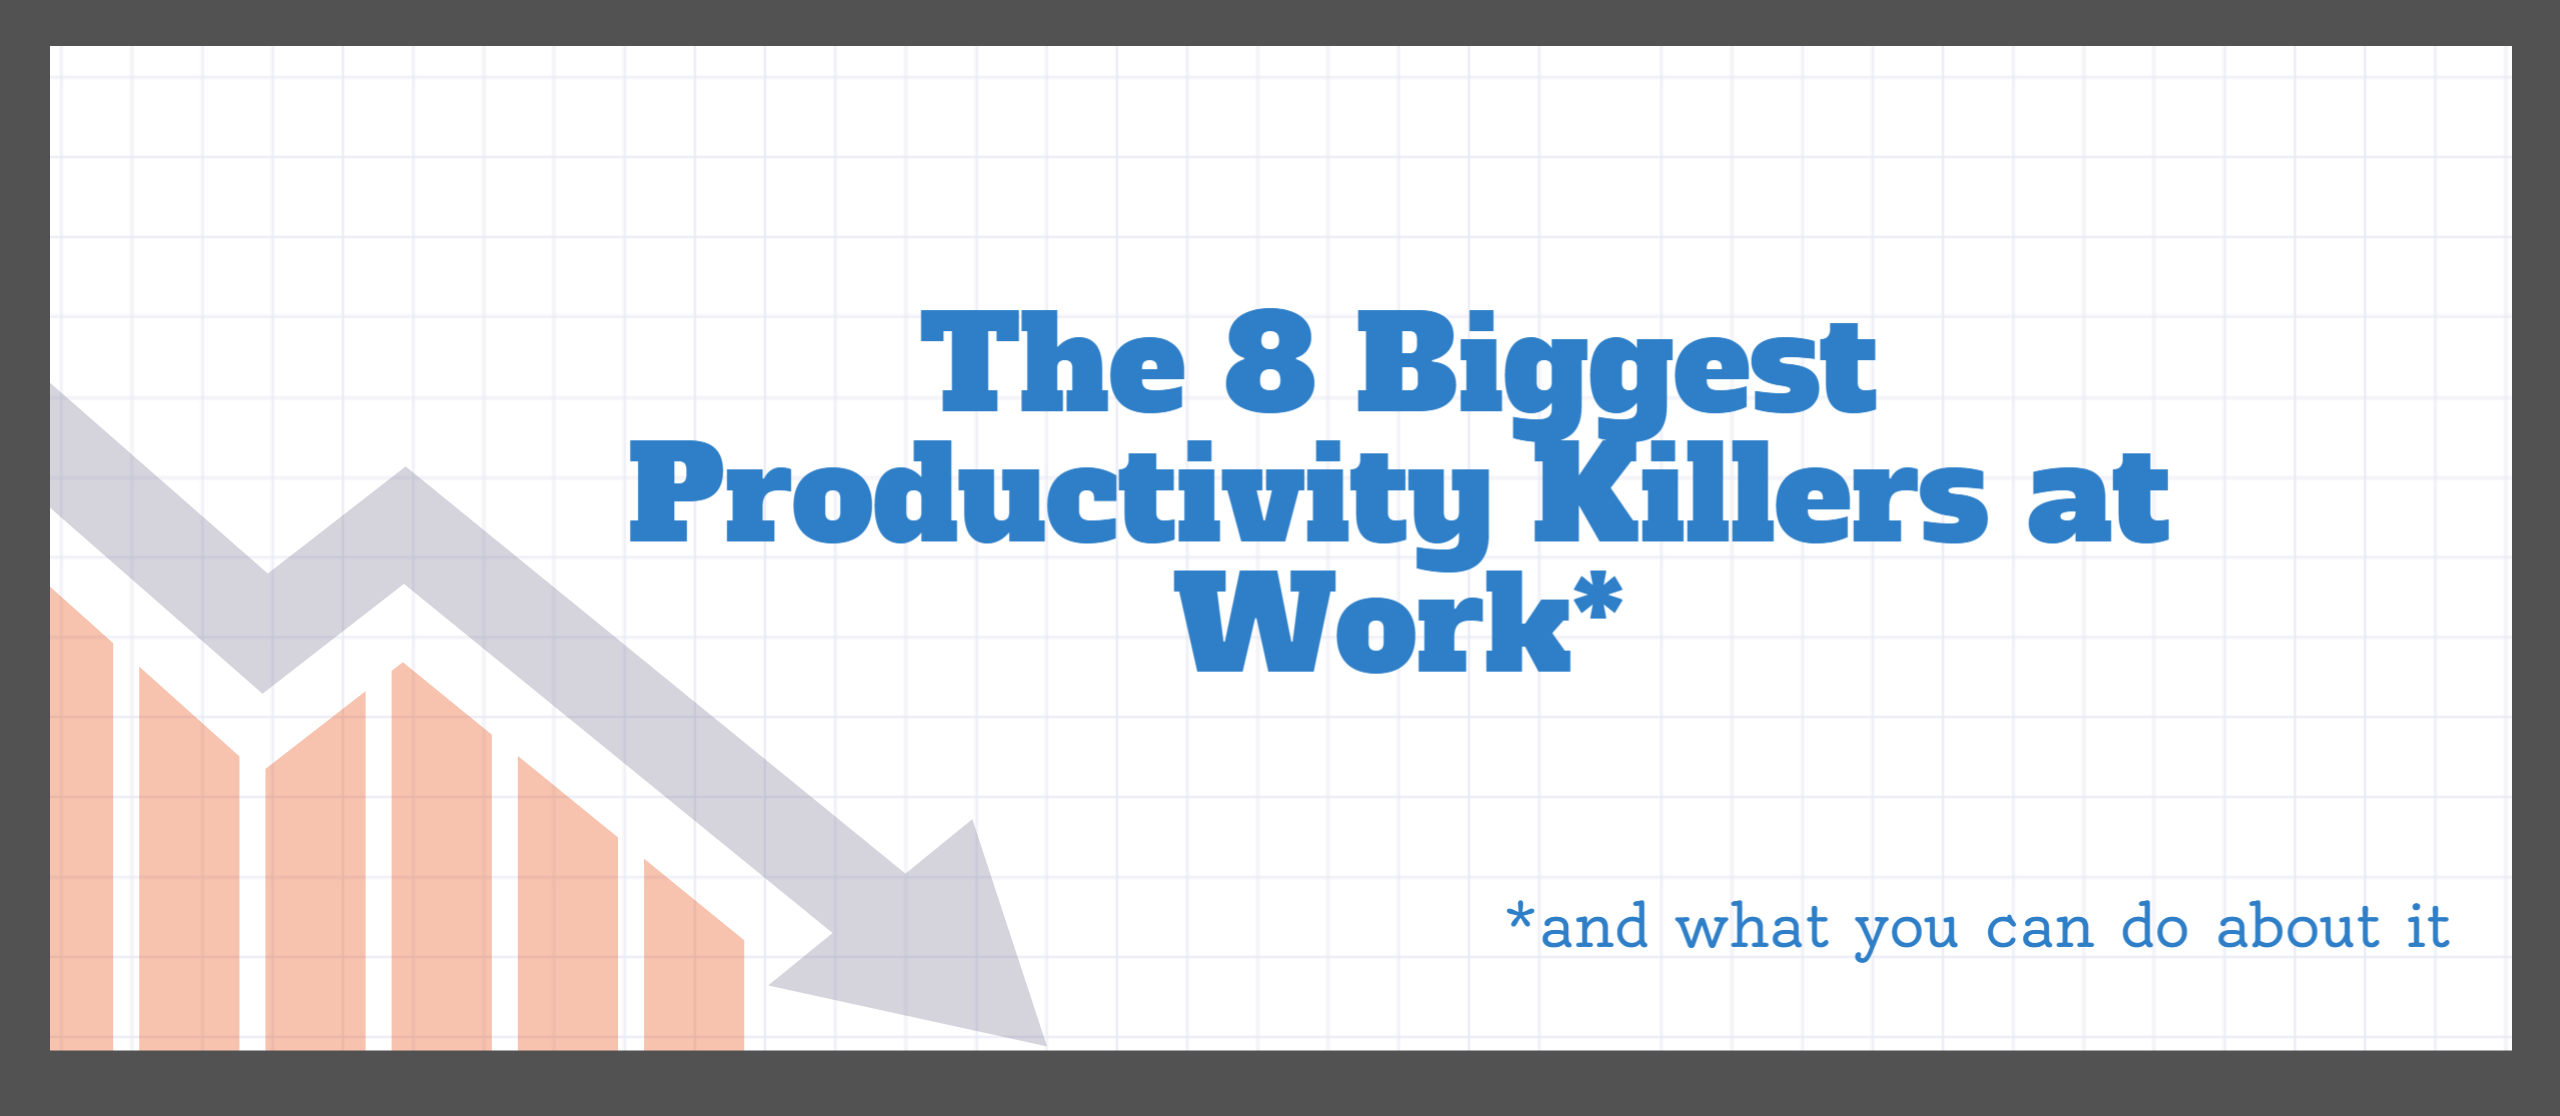 The 8 Biggest Productivity Killers at Work